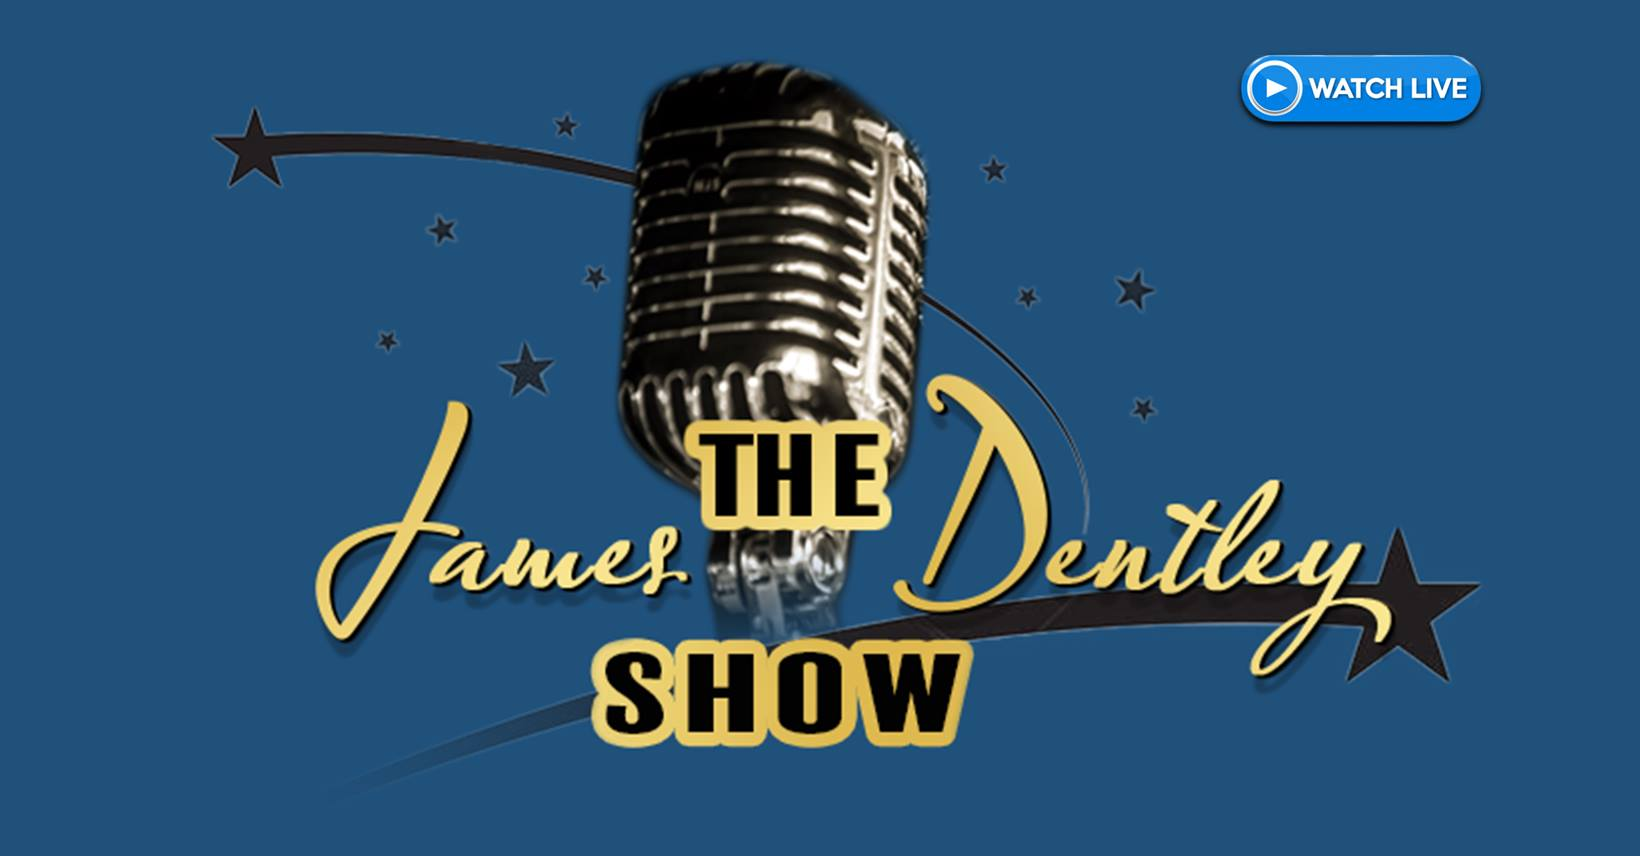 The James Dentley Show